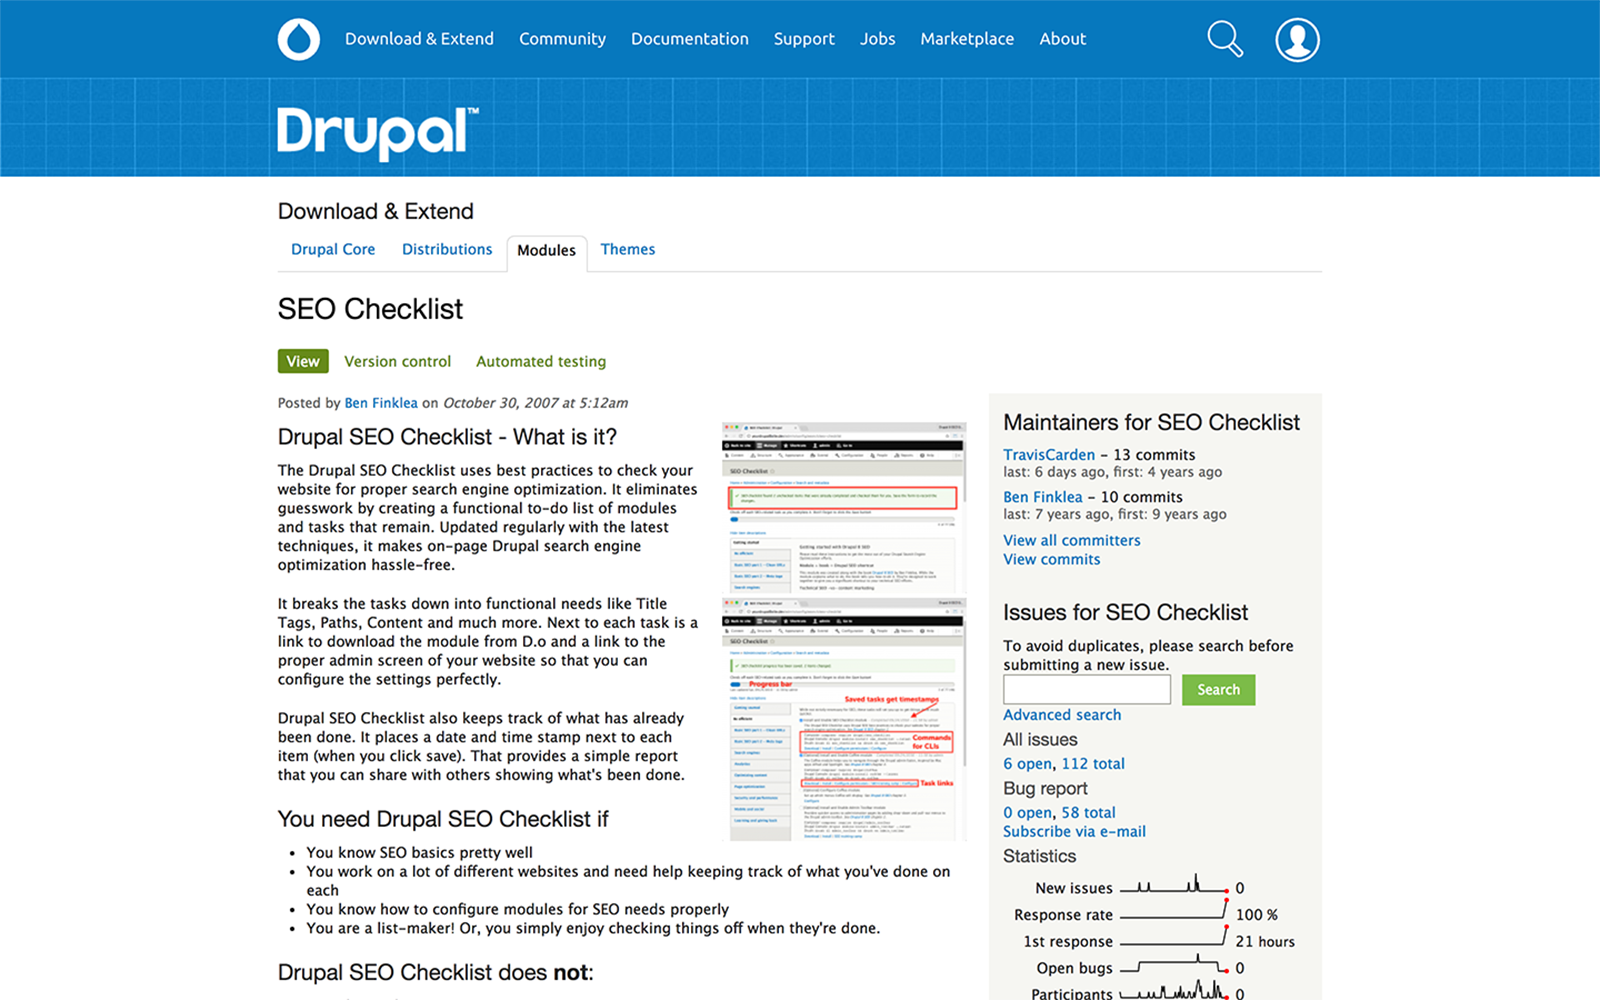 Drupal SEO checklist module screenshot.